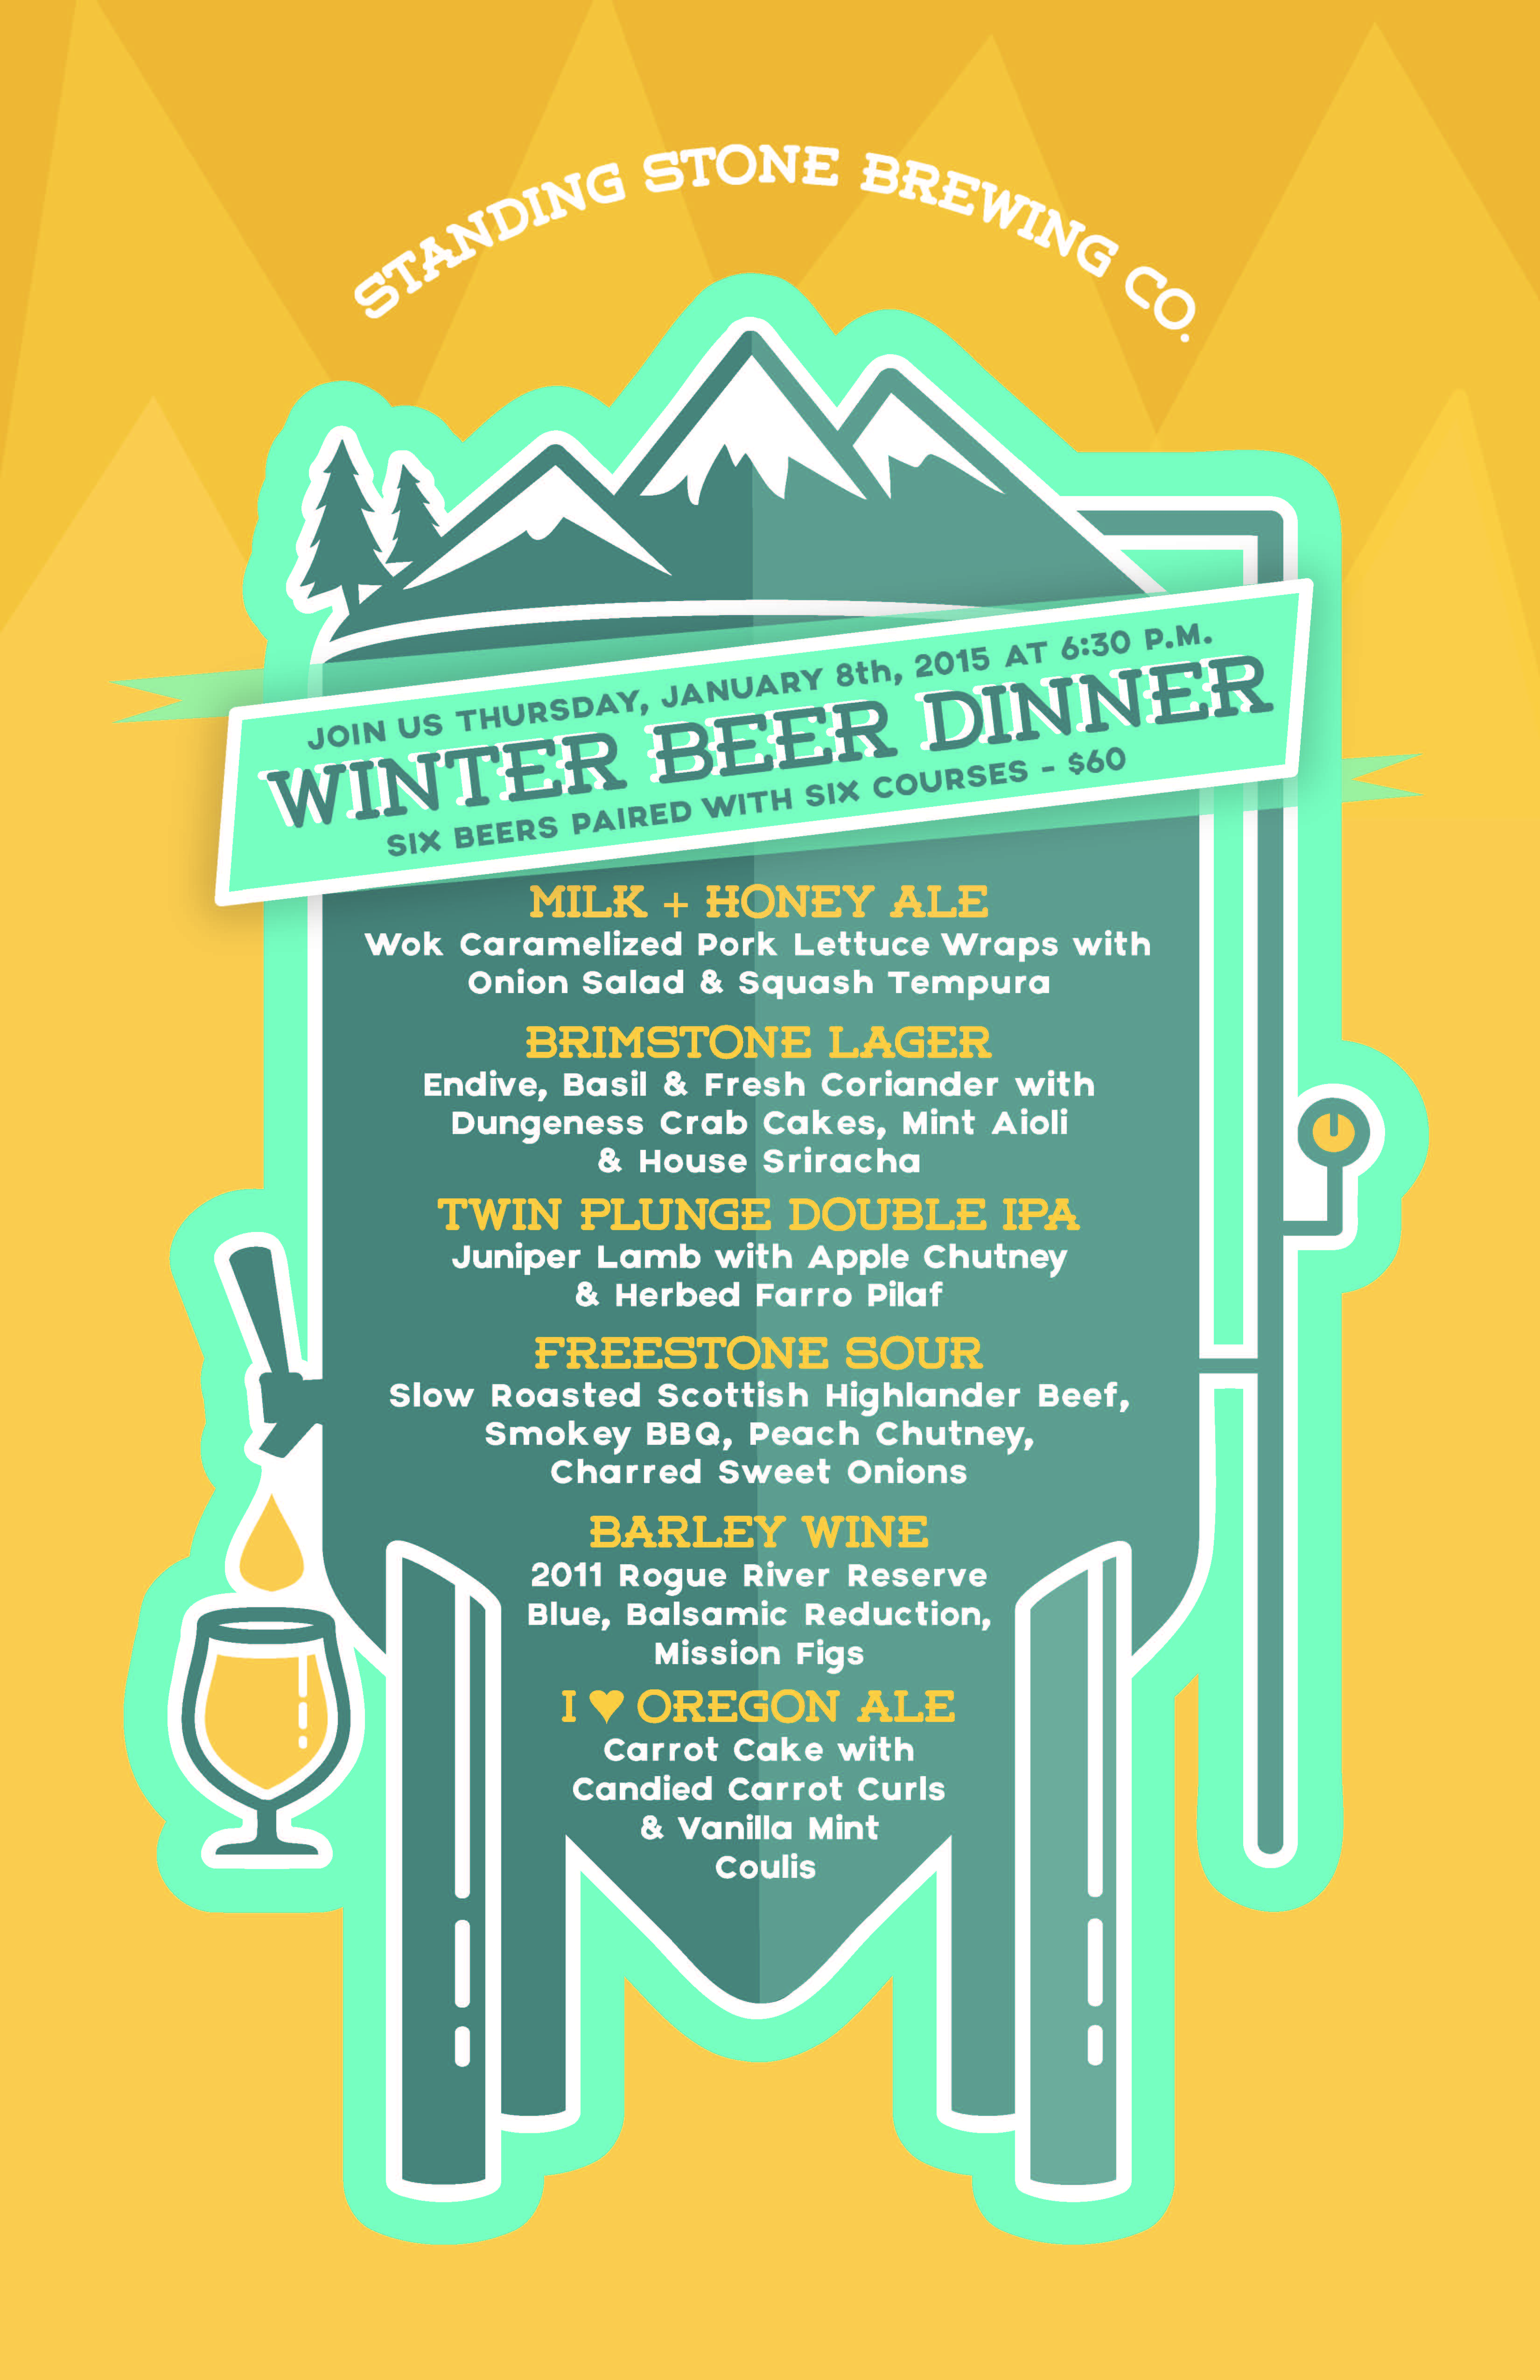 2015 Beer Dinner Poster Standing Stone Brewing Company